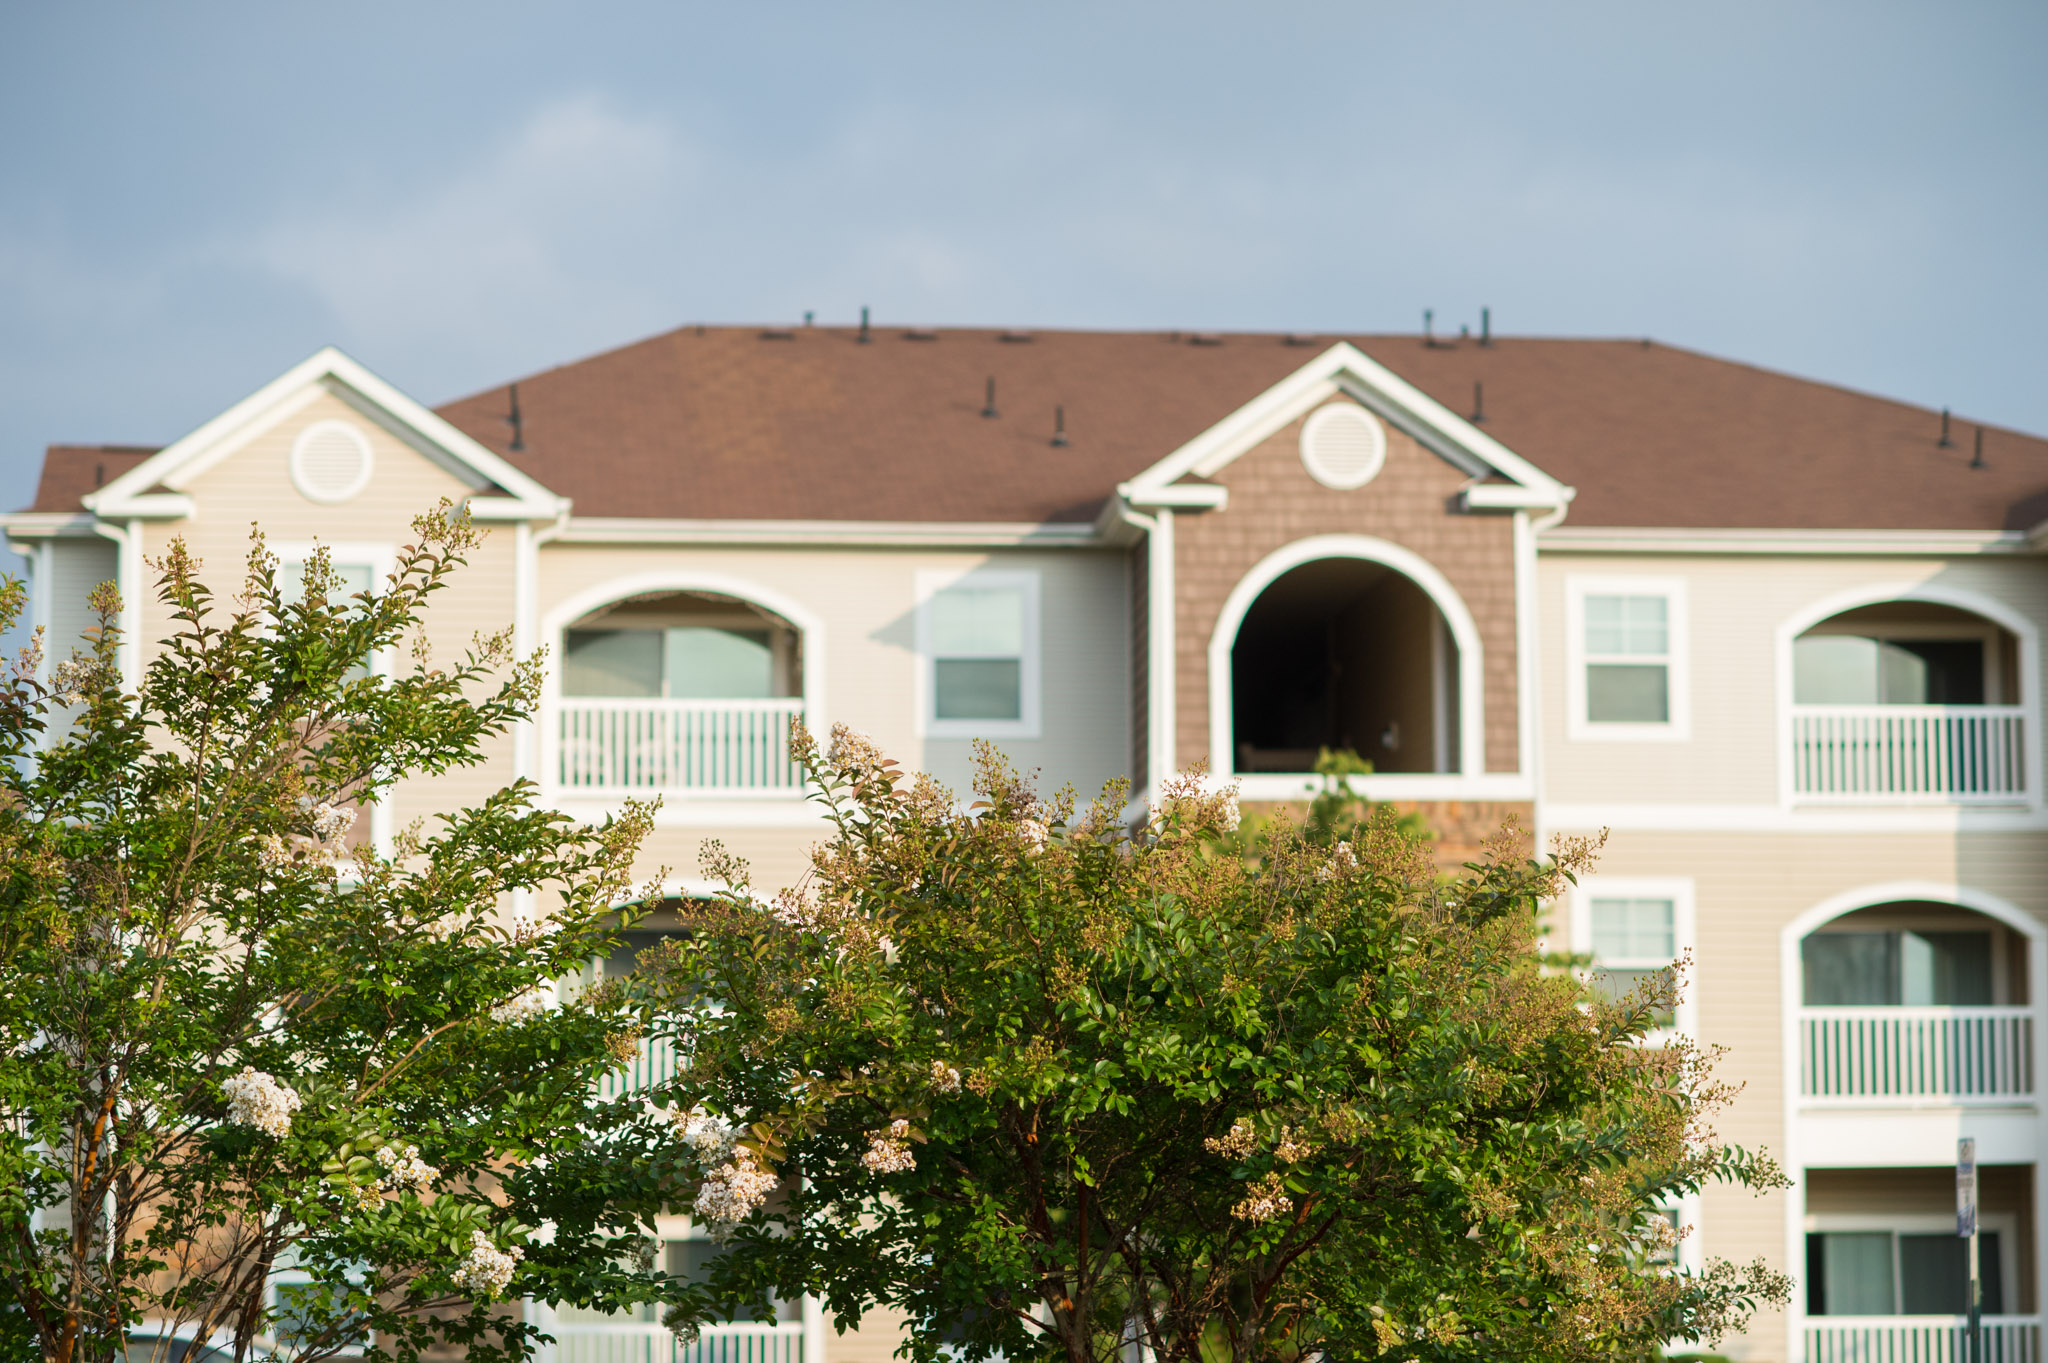 North 38 Exteriors for Web-1006.jpg